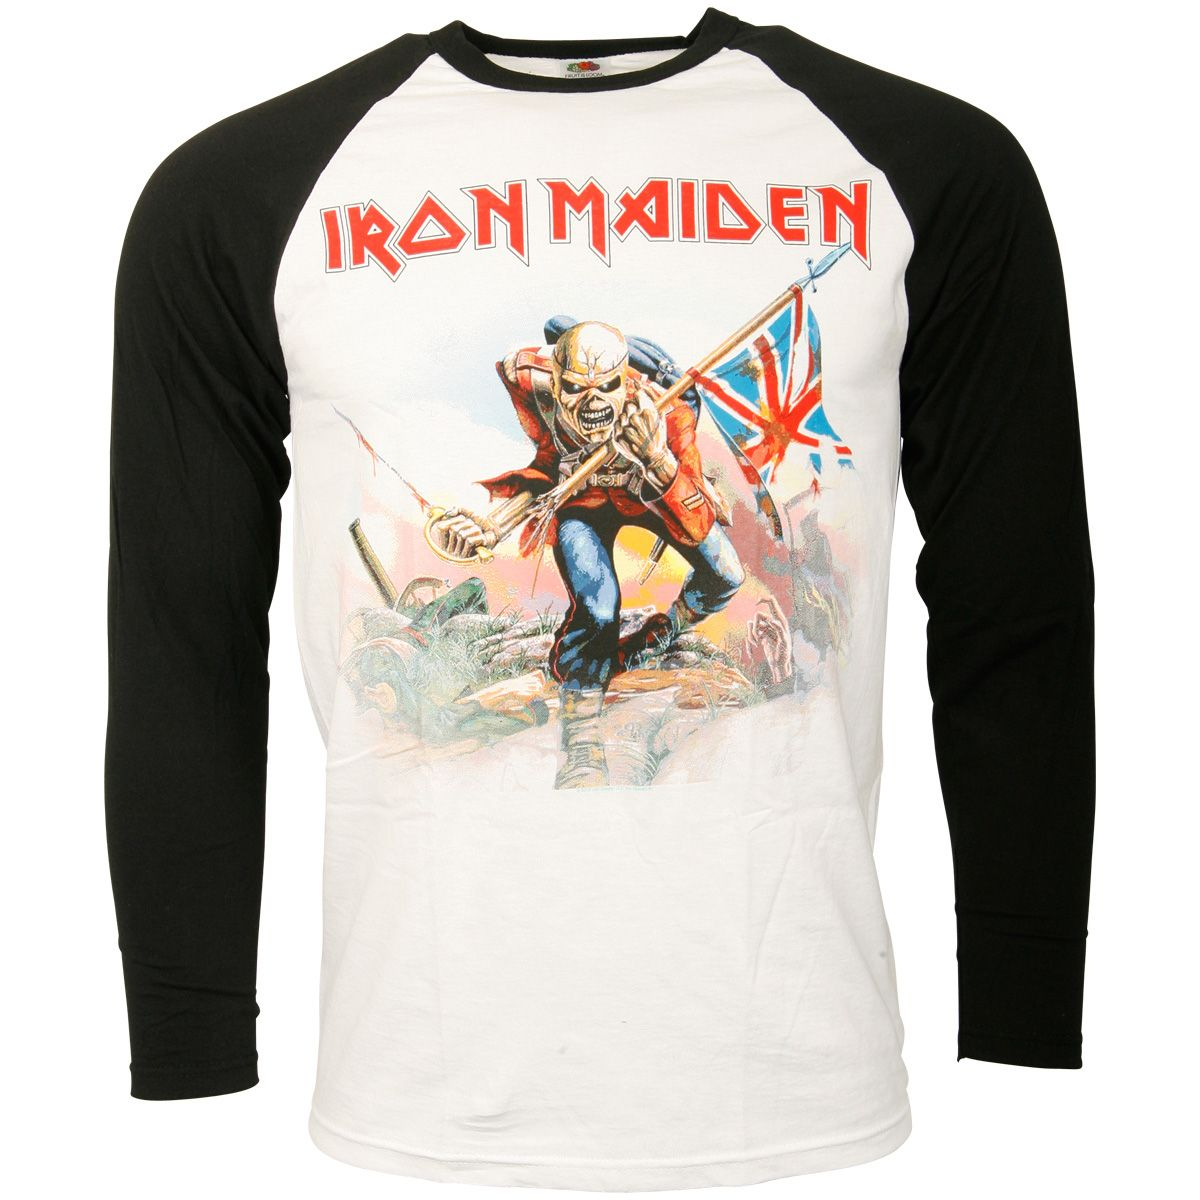 Iron Maiden - Baseball Shirt Trooper - schwarz/weiß